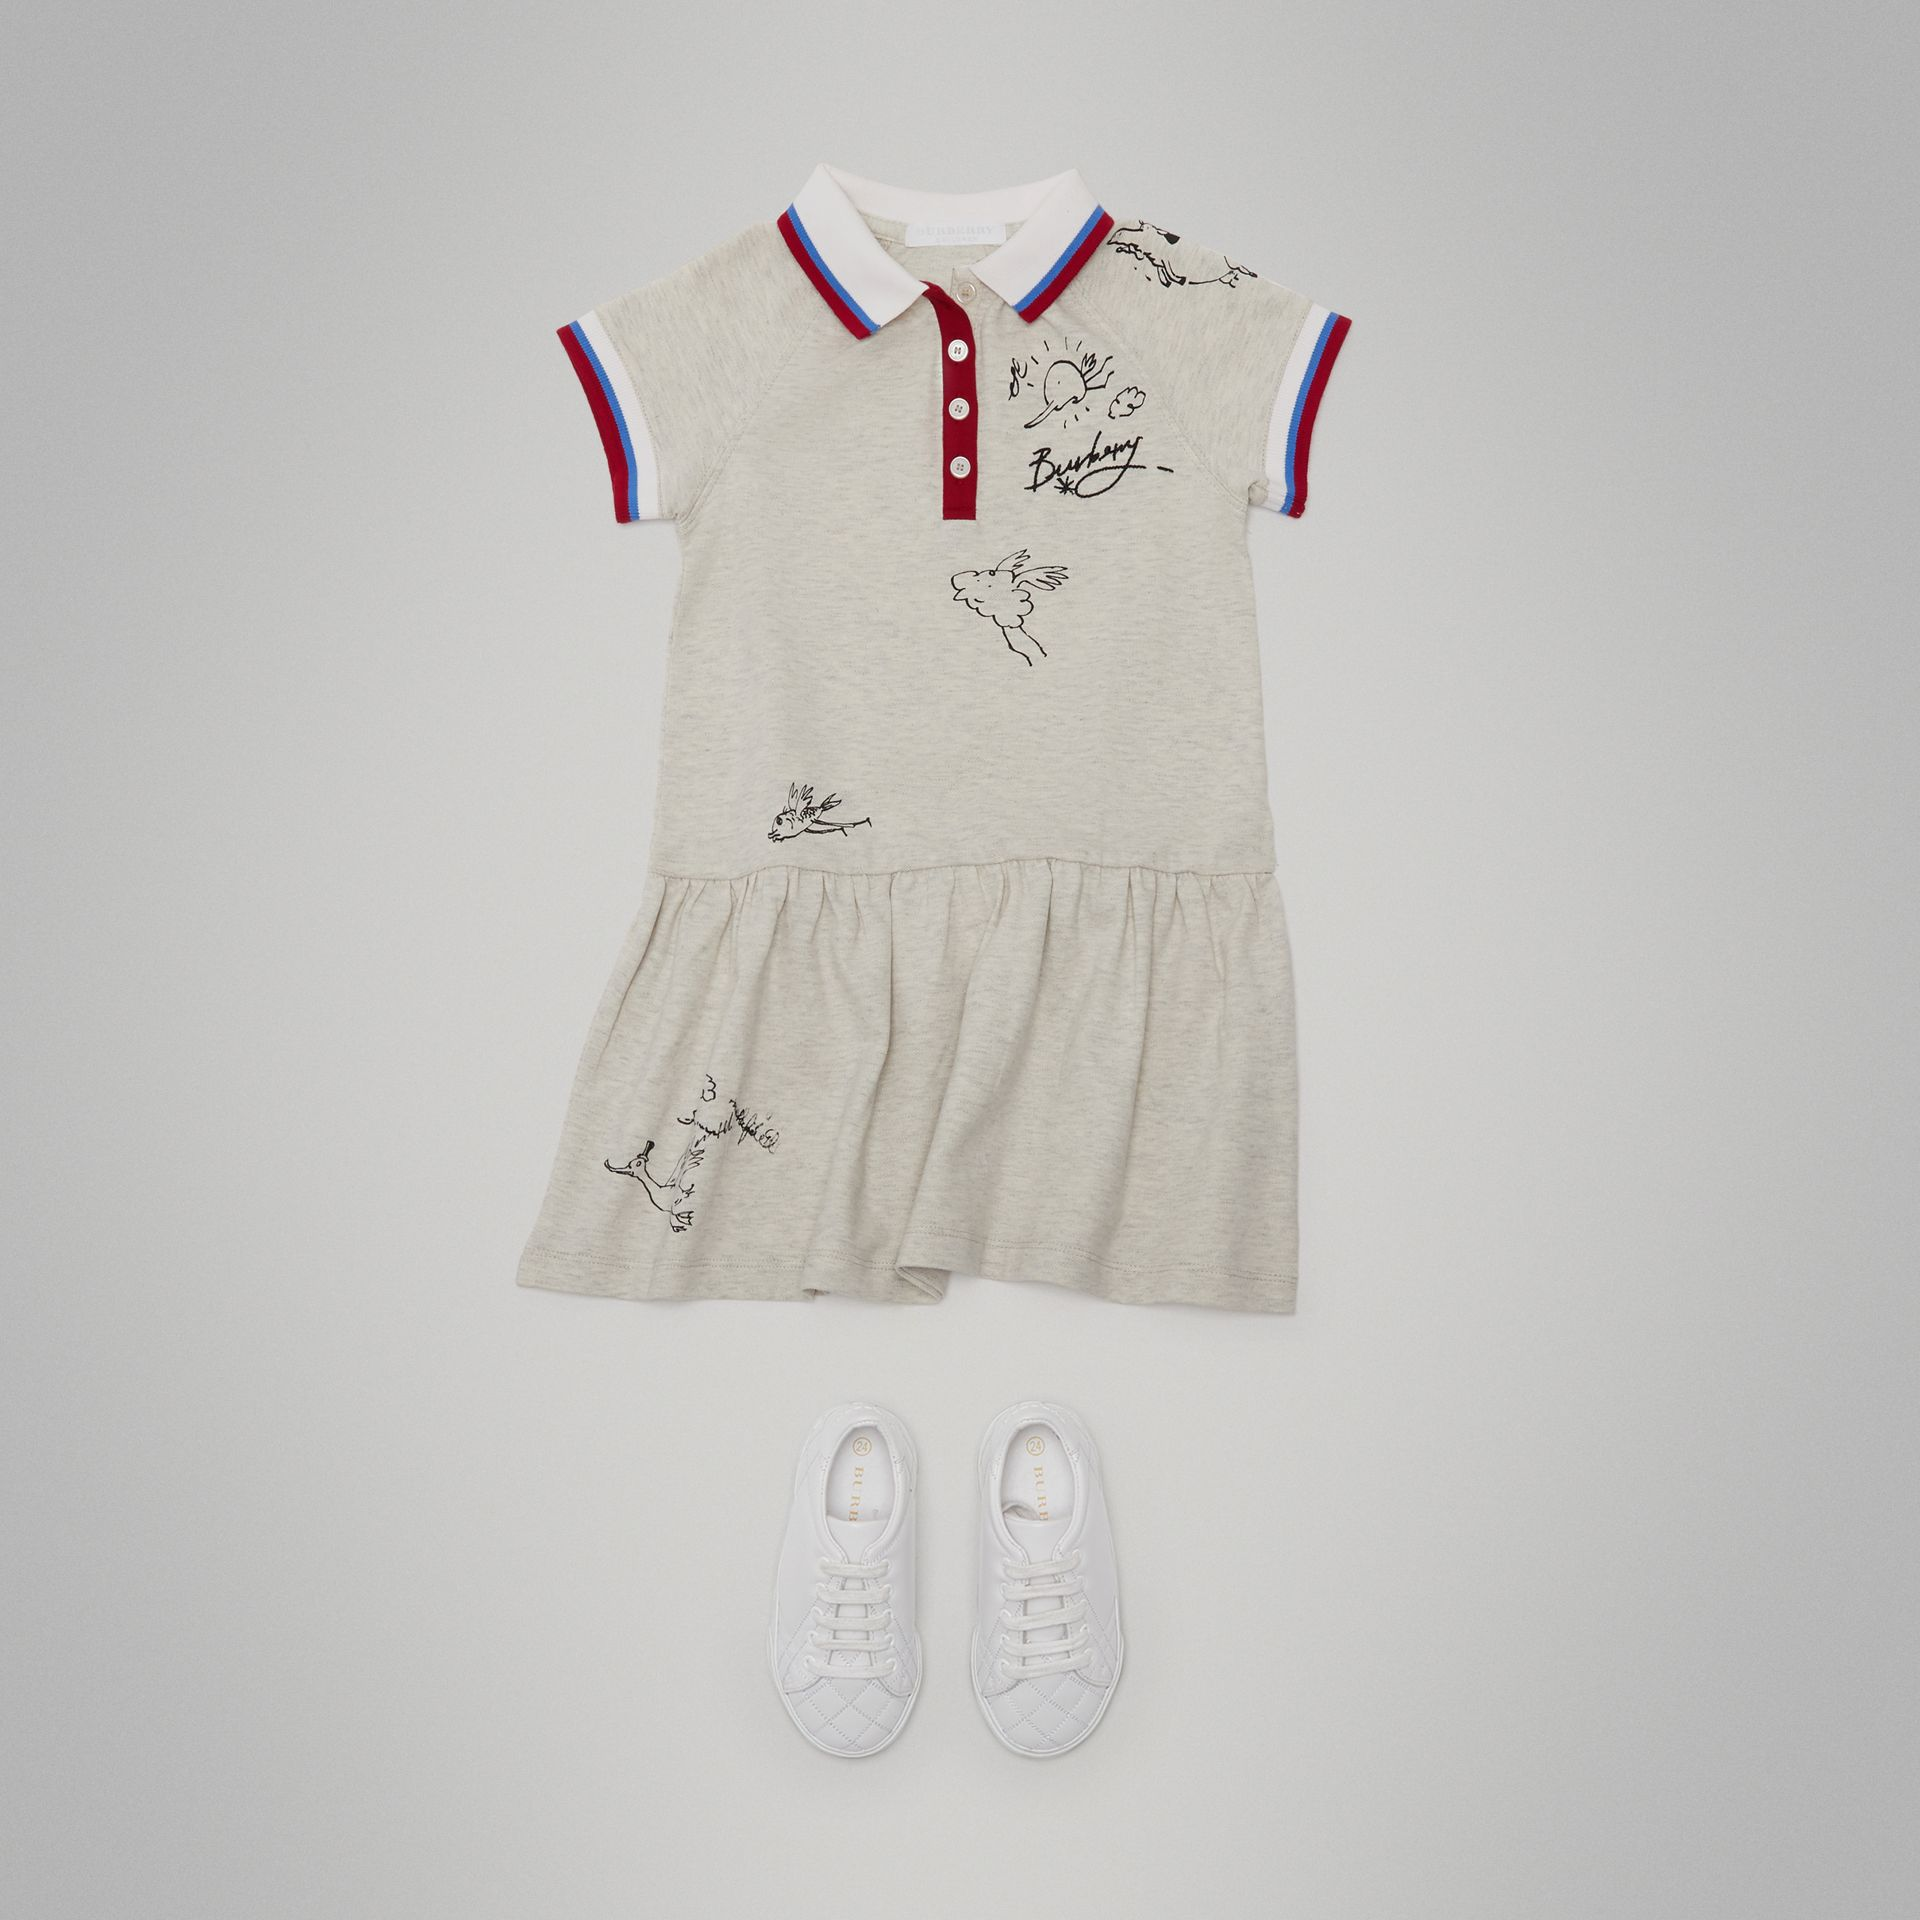 Robe polo en coton extensible (Camaïeu De Blancs) - Fille | Burberry Canada - photo de la galerie 2